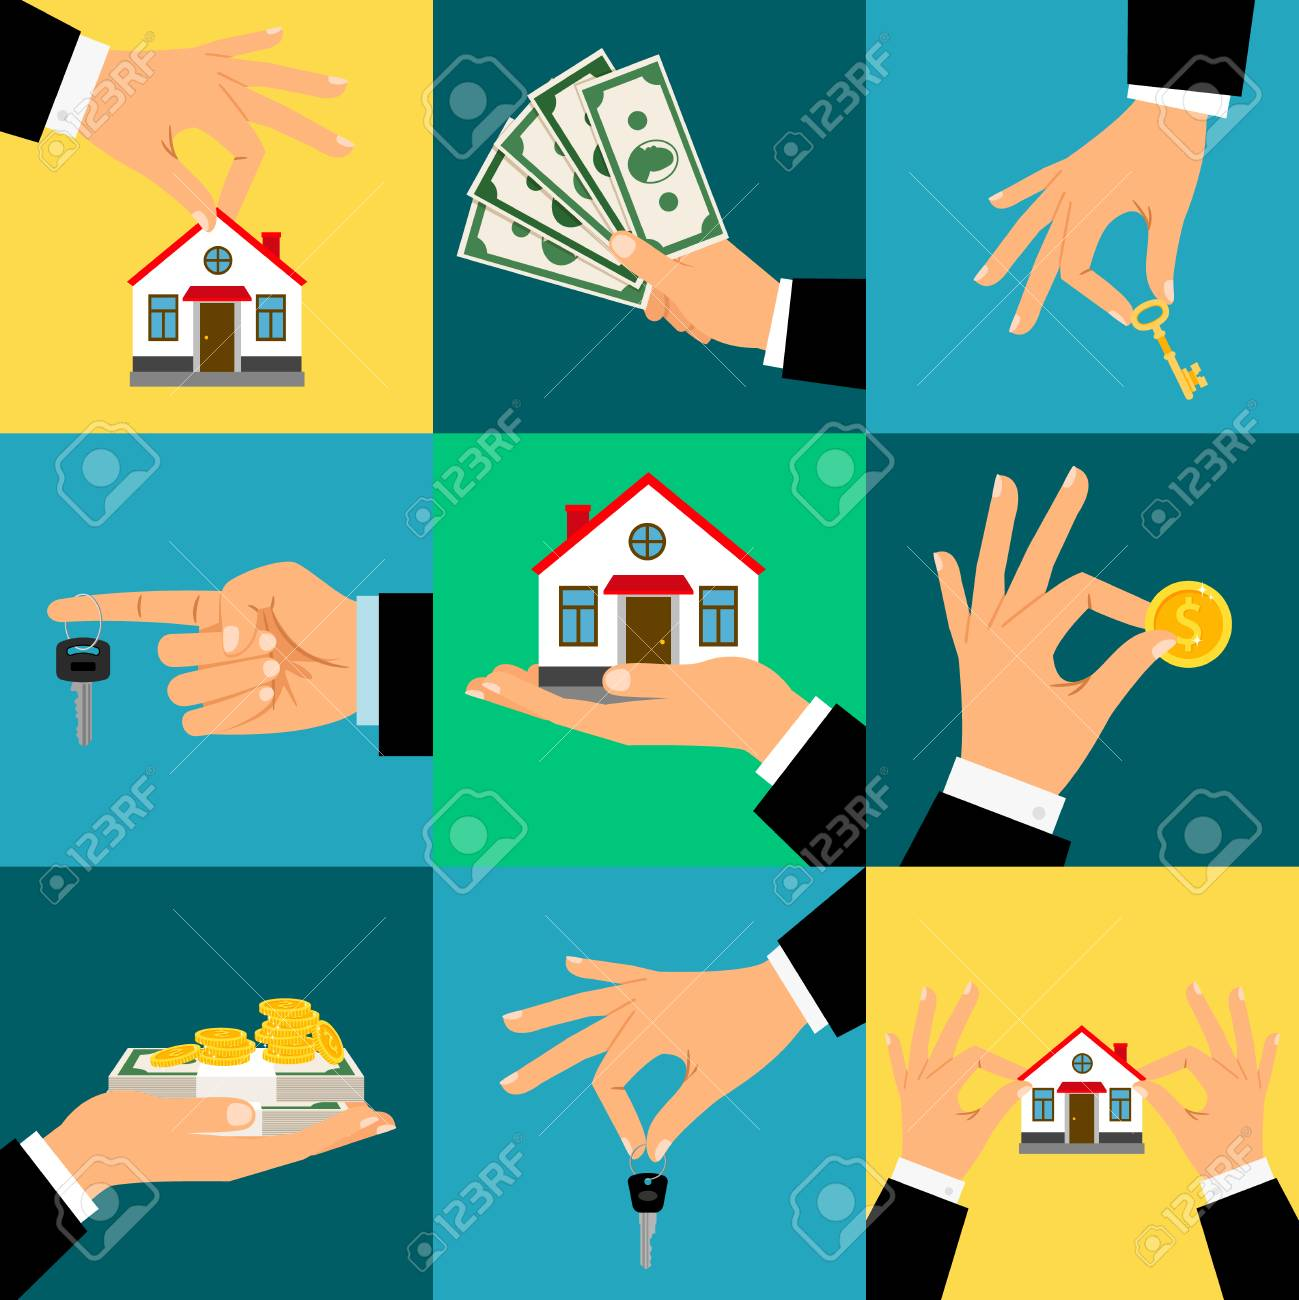 Buy House Hands vector illustration. Hand holds home or house key and money, isolated flat - 87703571